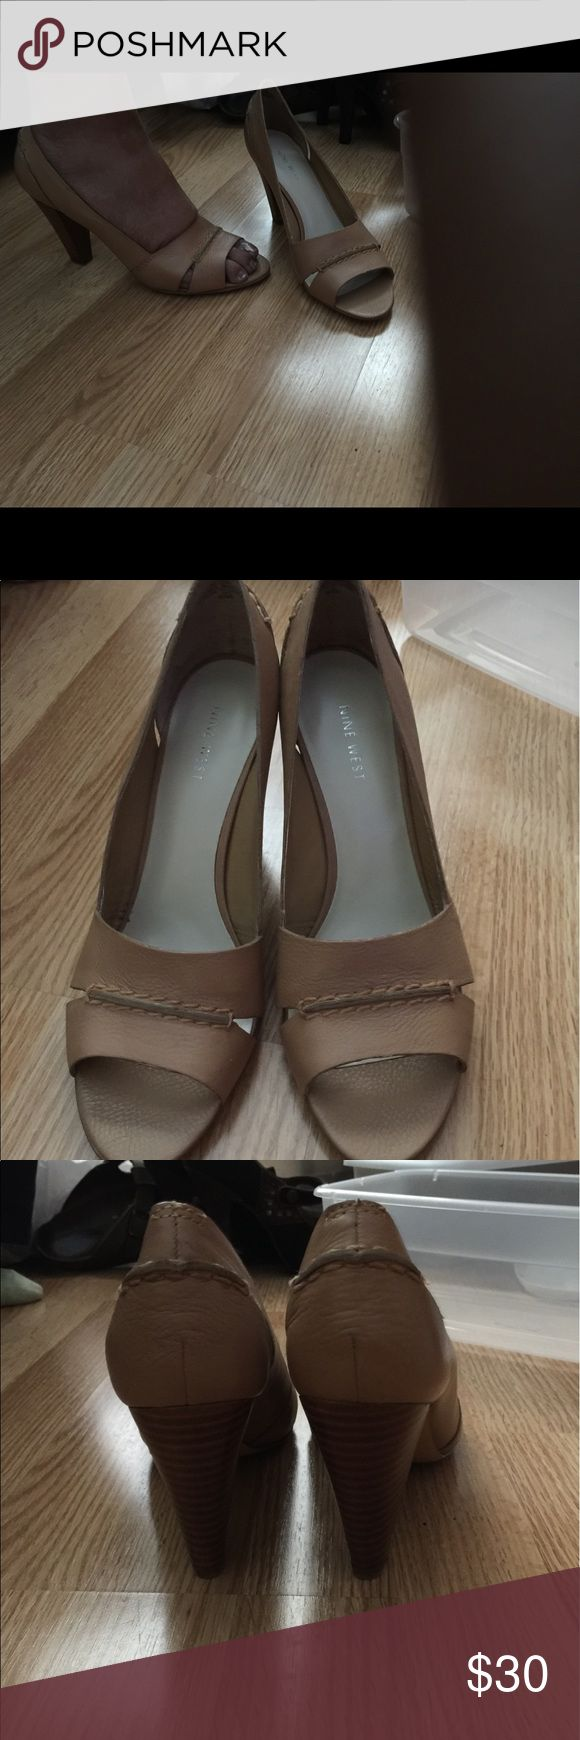 Nine West open toe tan heels 3 inches high Excellent condition nwot Nine West Shoes Heels